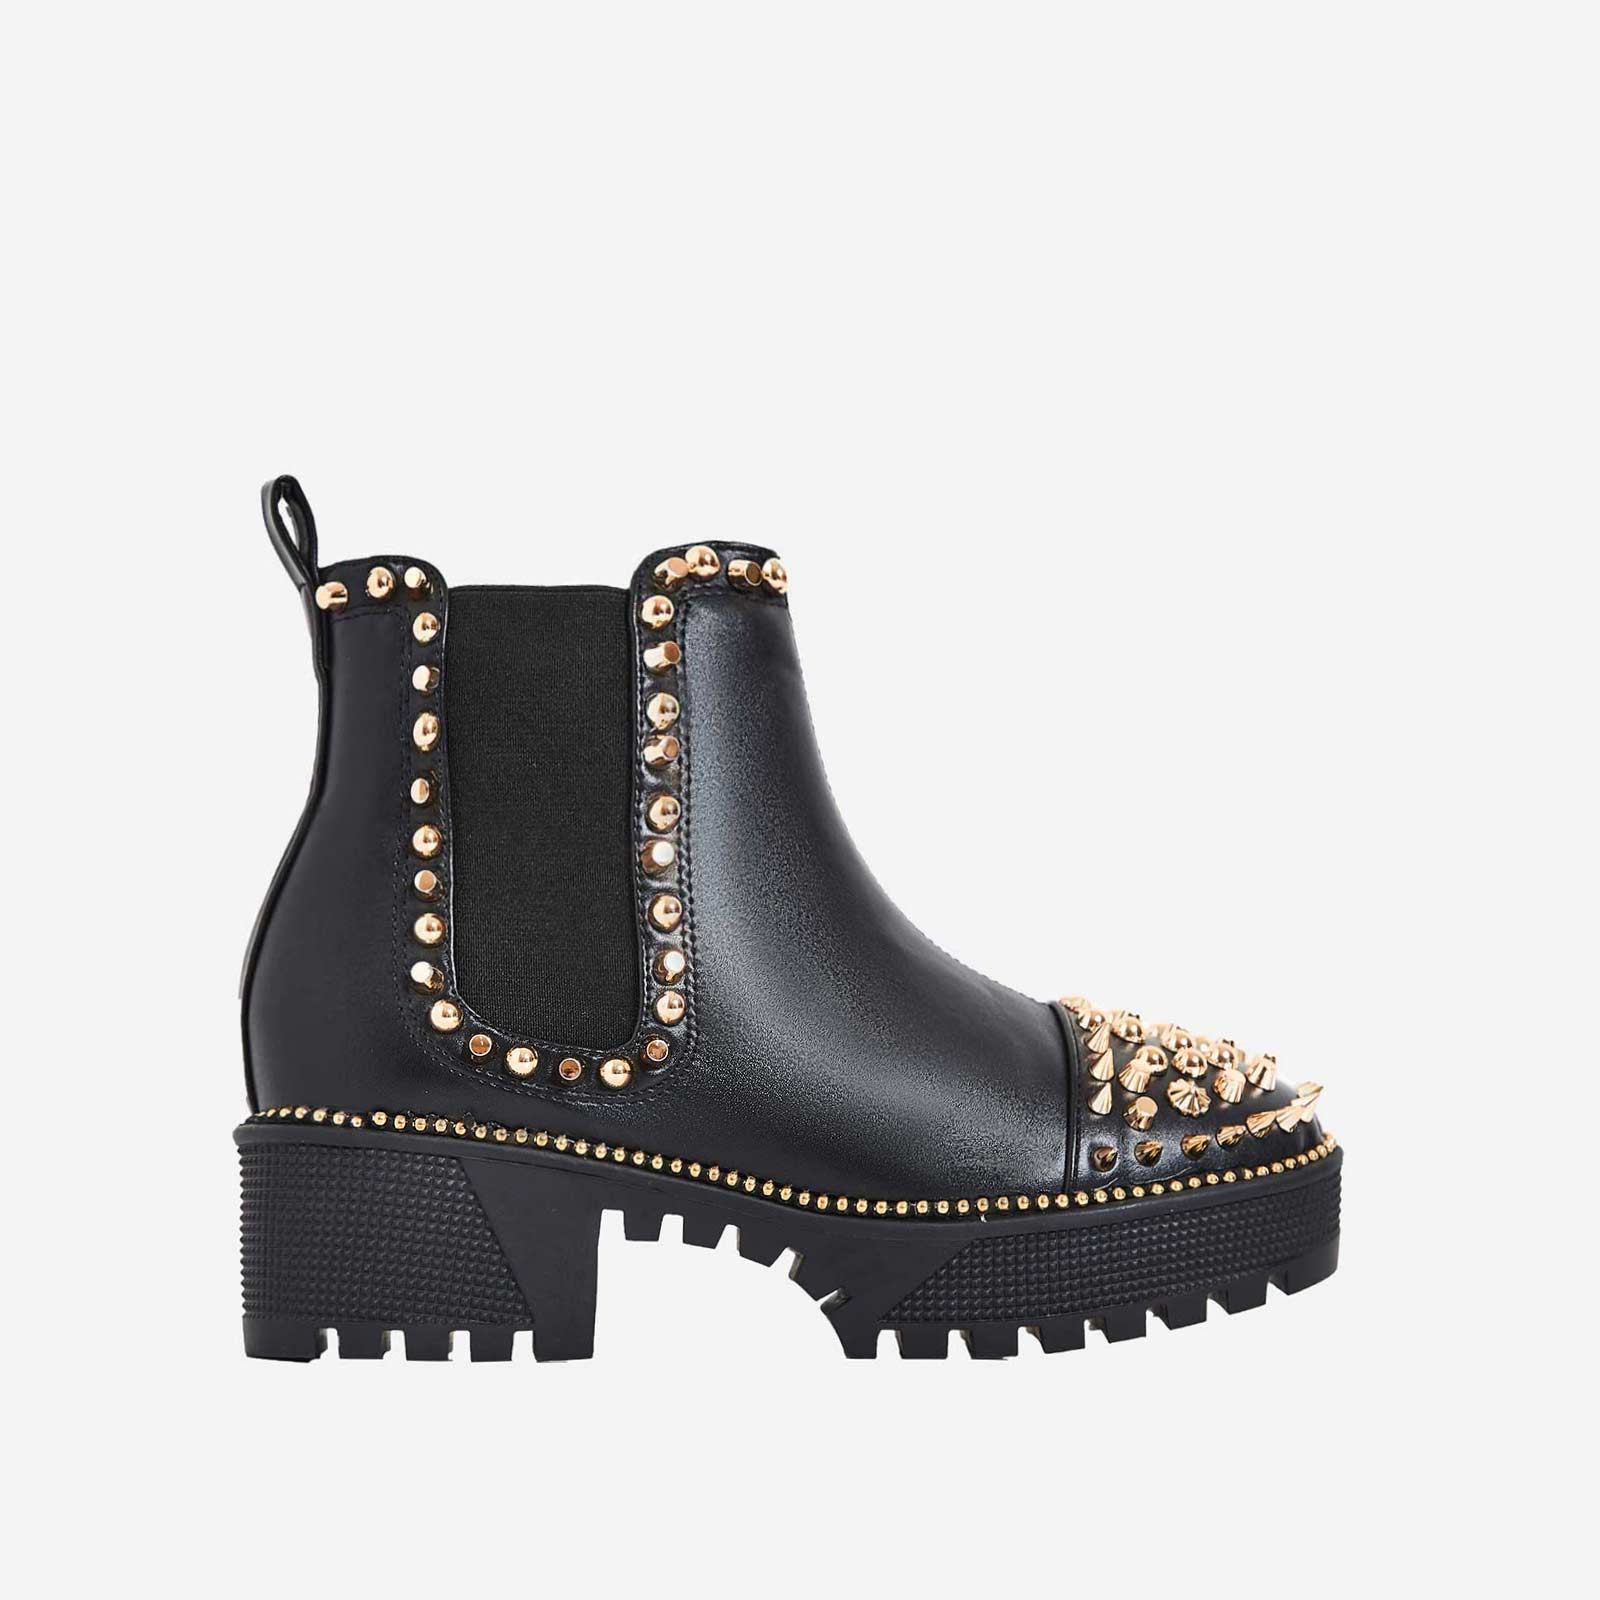 Jack Gold Studded Detail Biker Boot In Black Faux Leather